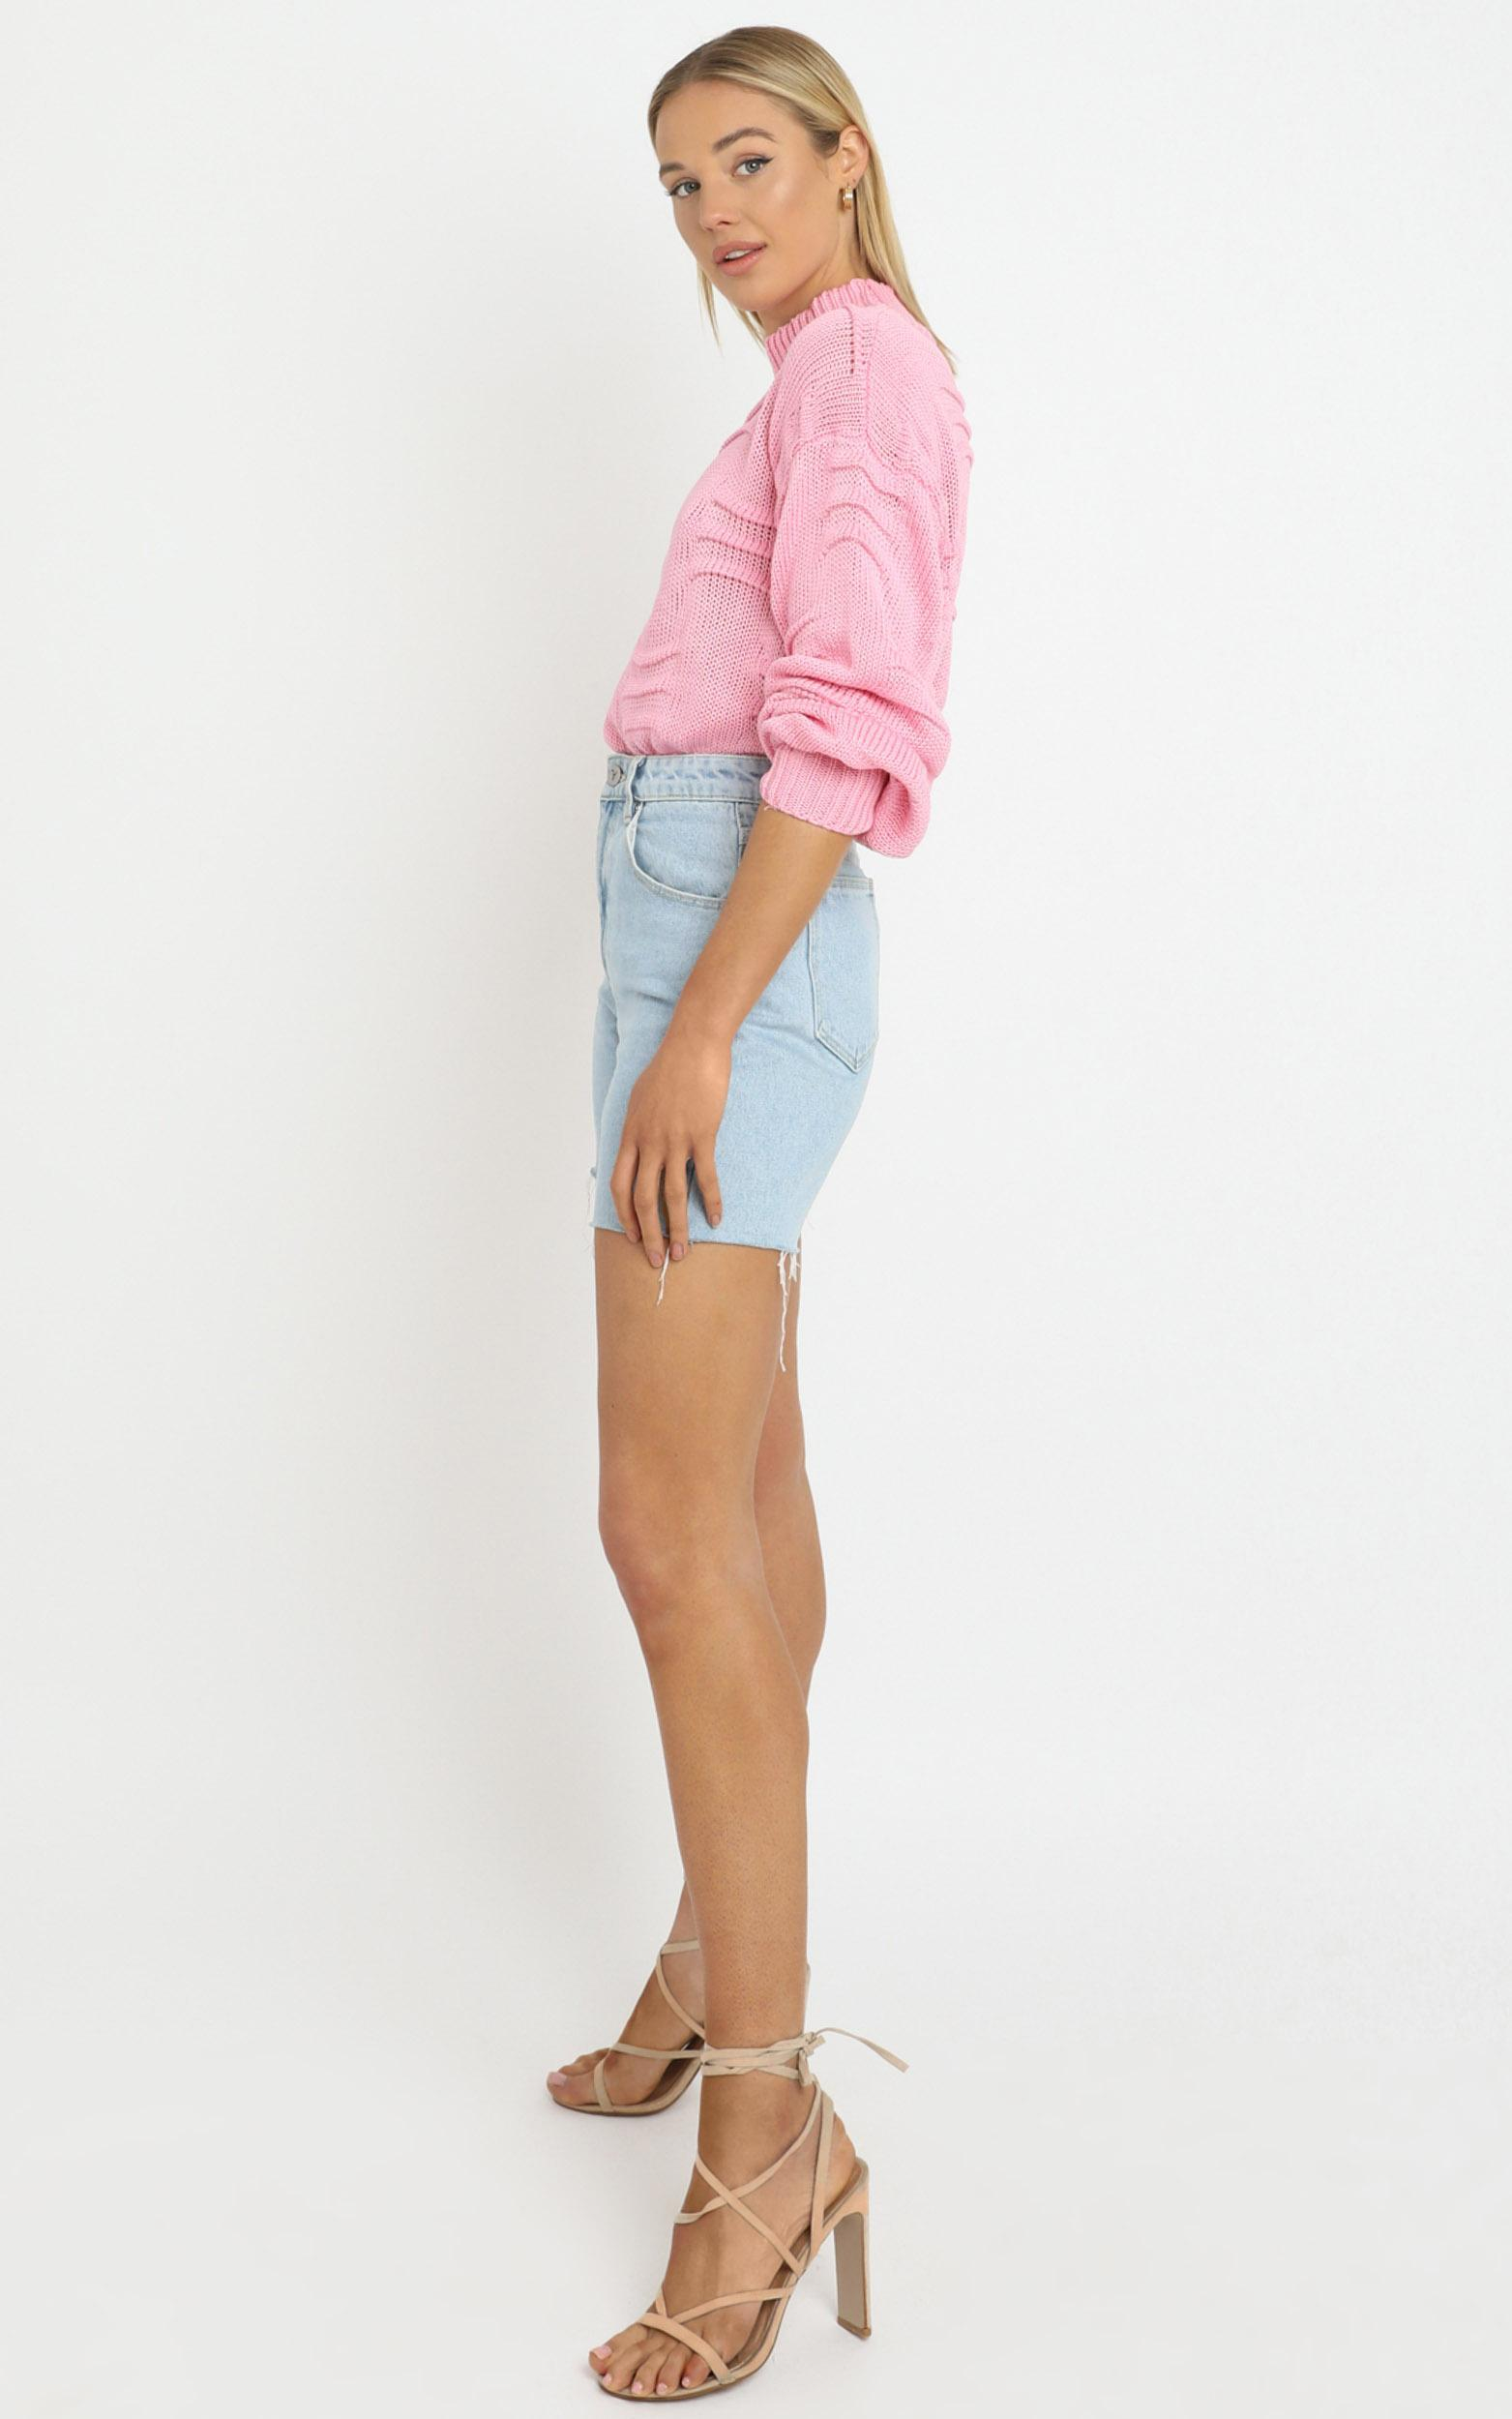 Laura Knit in Pink - M/L, Pink, hi-res image number null